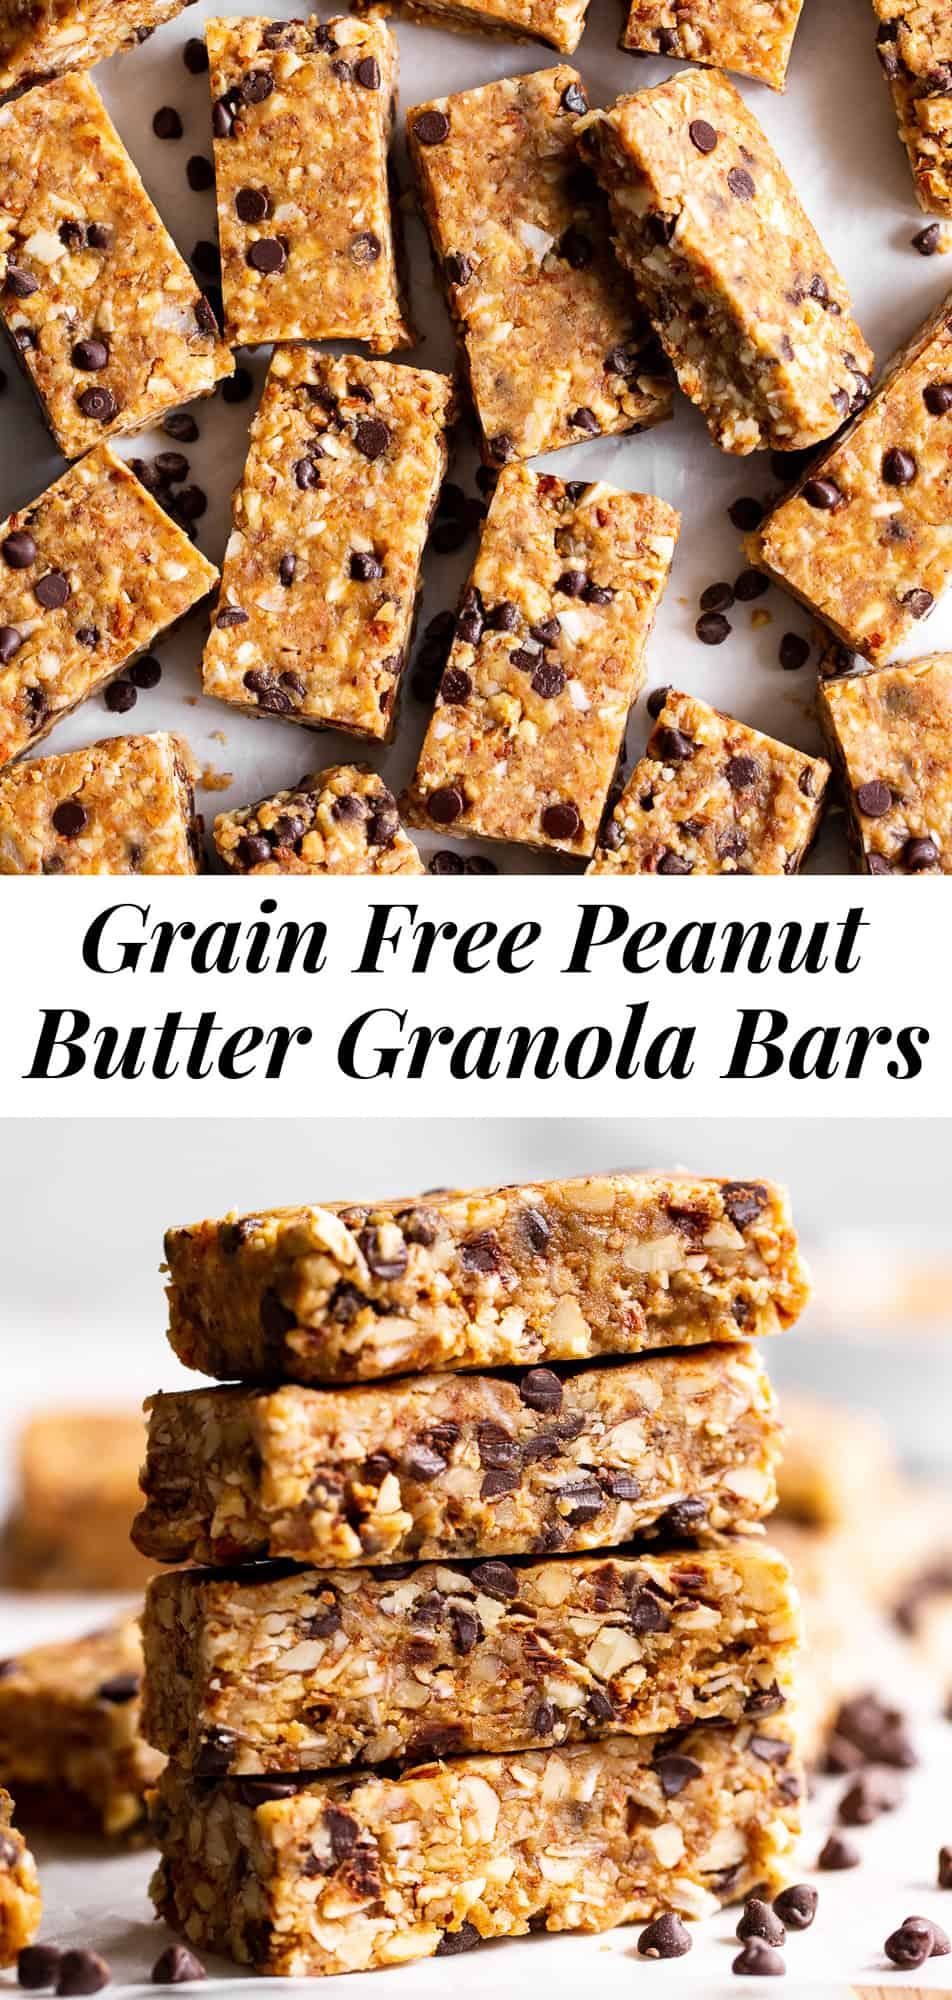 These no bake, chewy peanut butter granola bars are a breeze to make and so addicting! They're gluten free and grain free, with both vegan and paleo options. Perfect for quick snacks, these homemade granola bars are perfect right out of the fridge or freezer. #peanutbutter #grainfree #paleo #glutenfree #granolabars #vegan